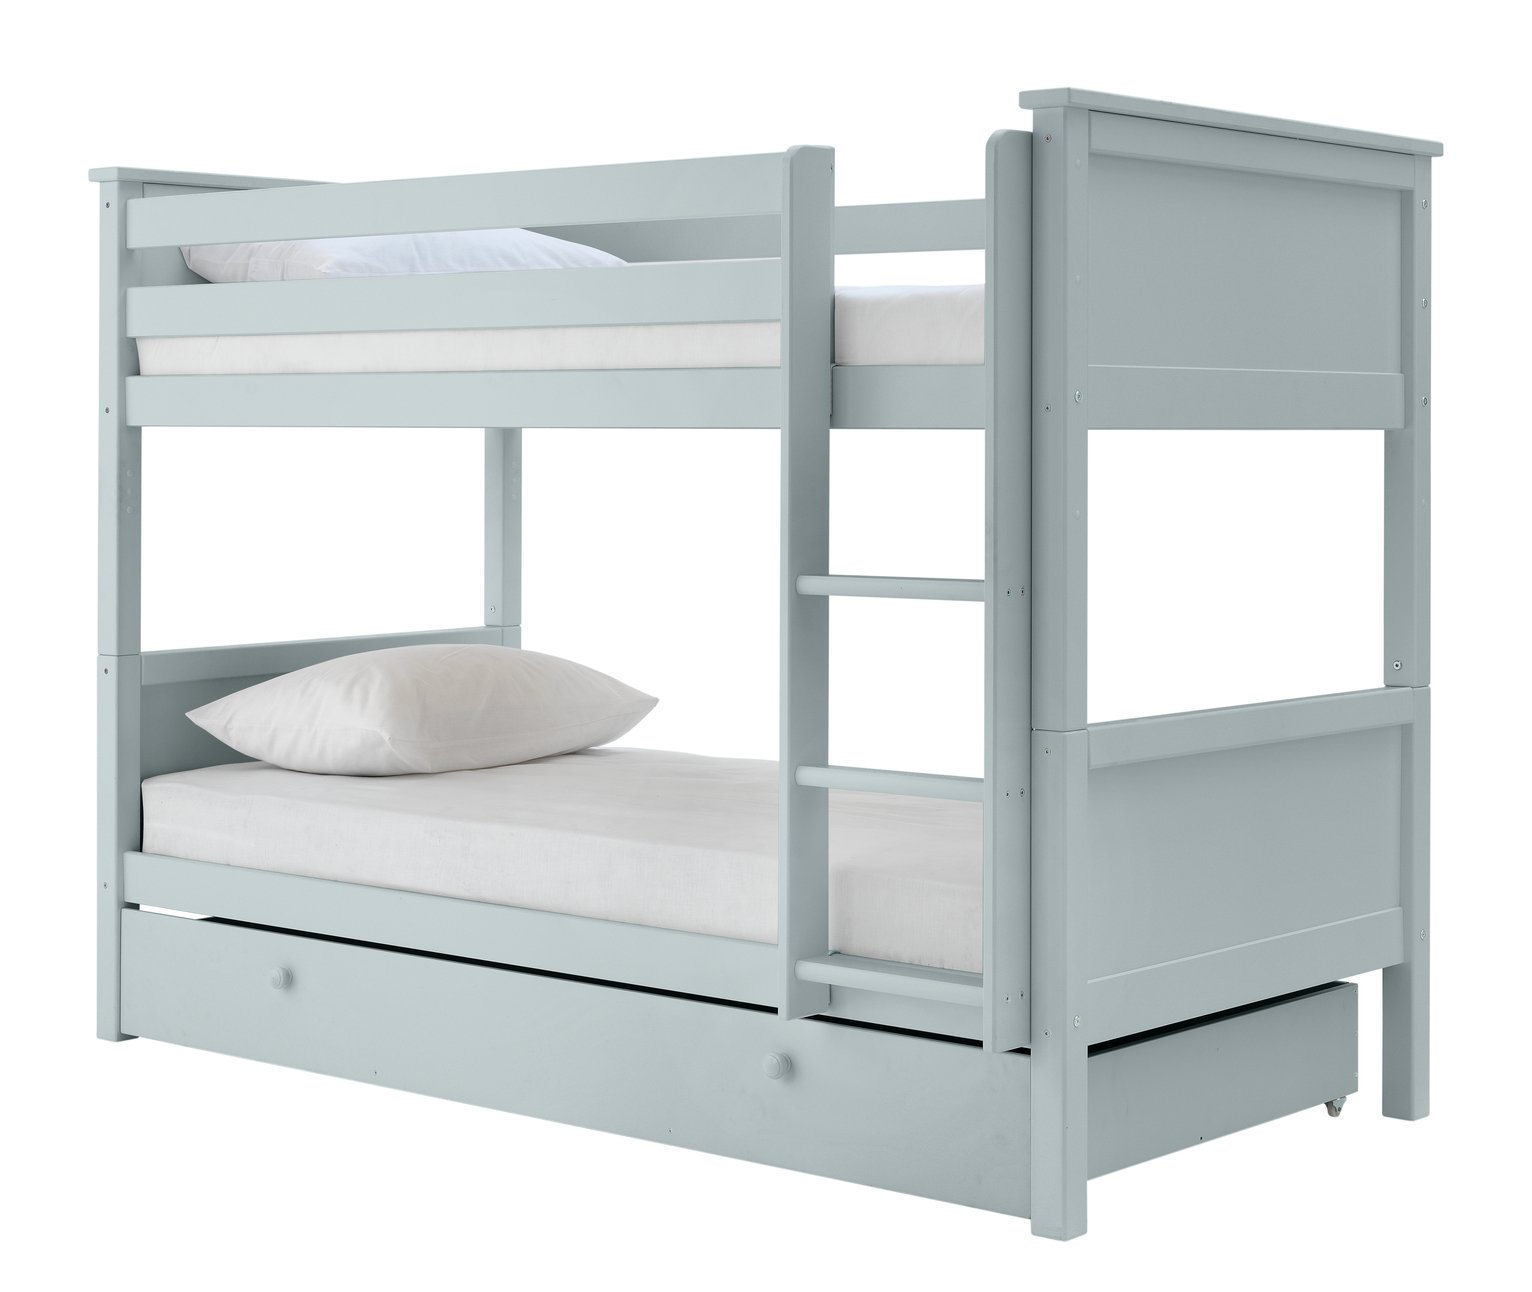 Argos Home Brooklyn Grey Bunk Bed, Drawer & Kids Mattress